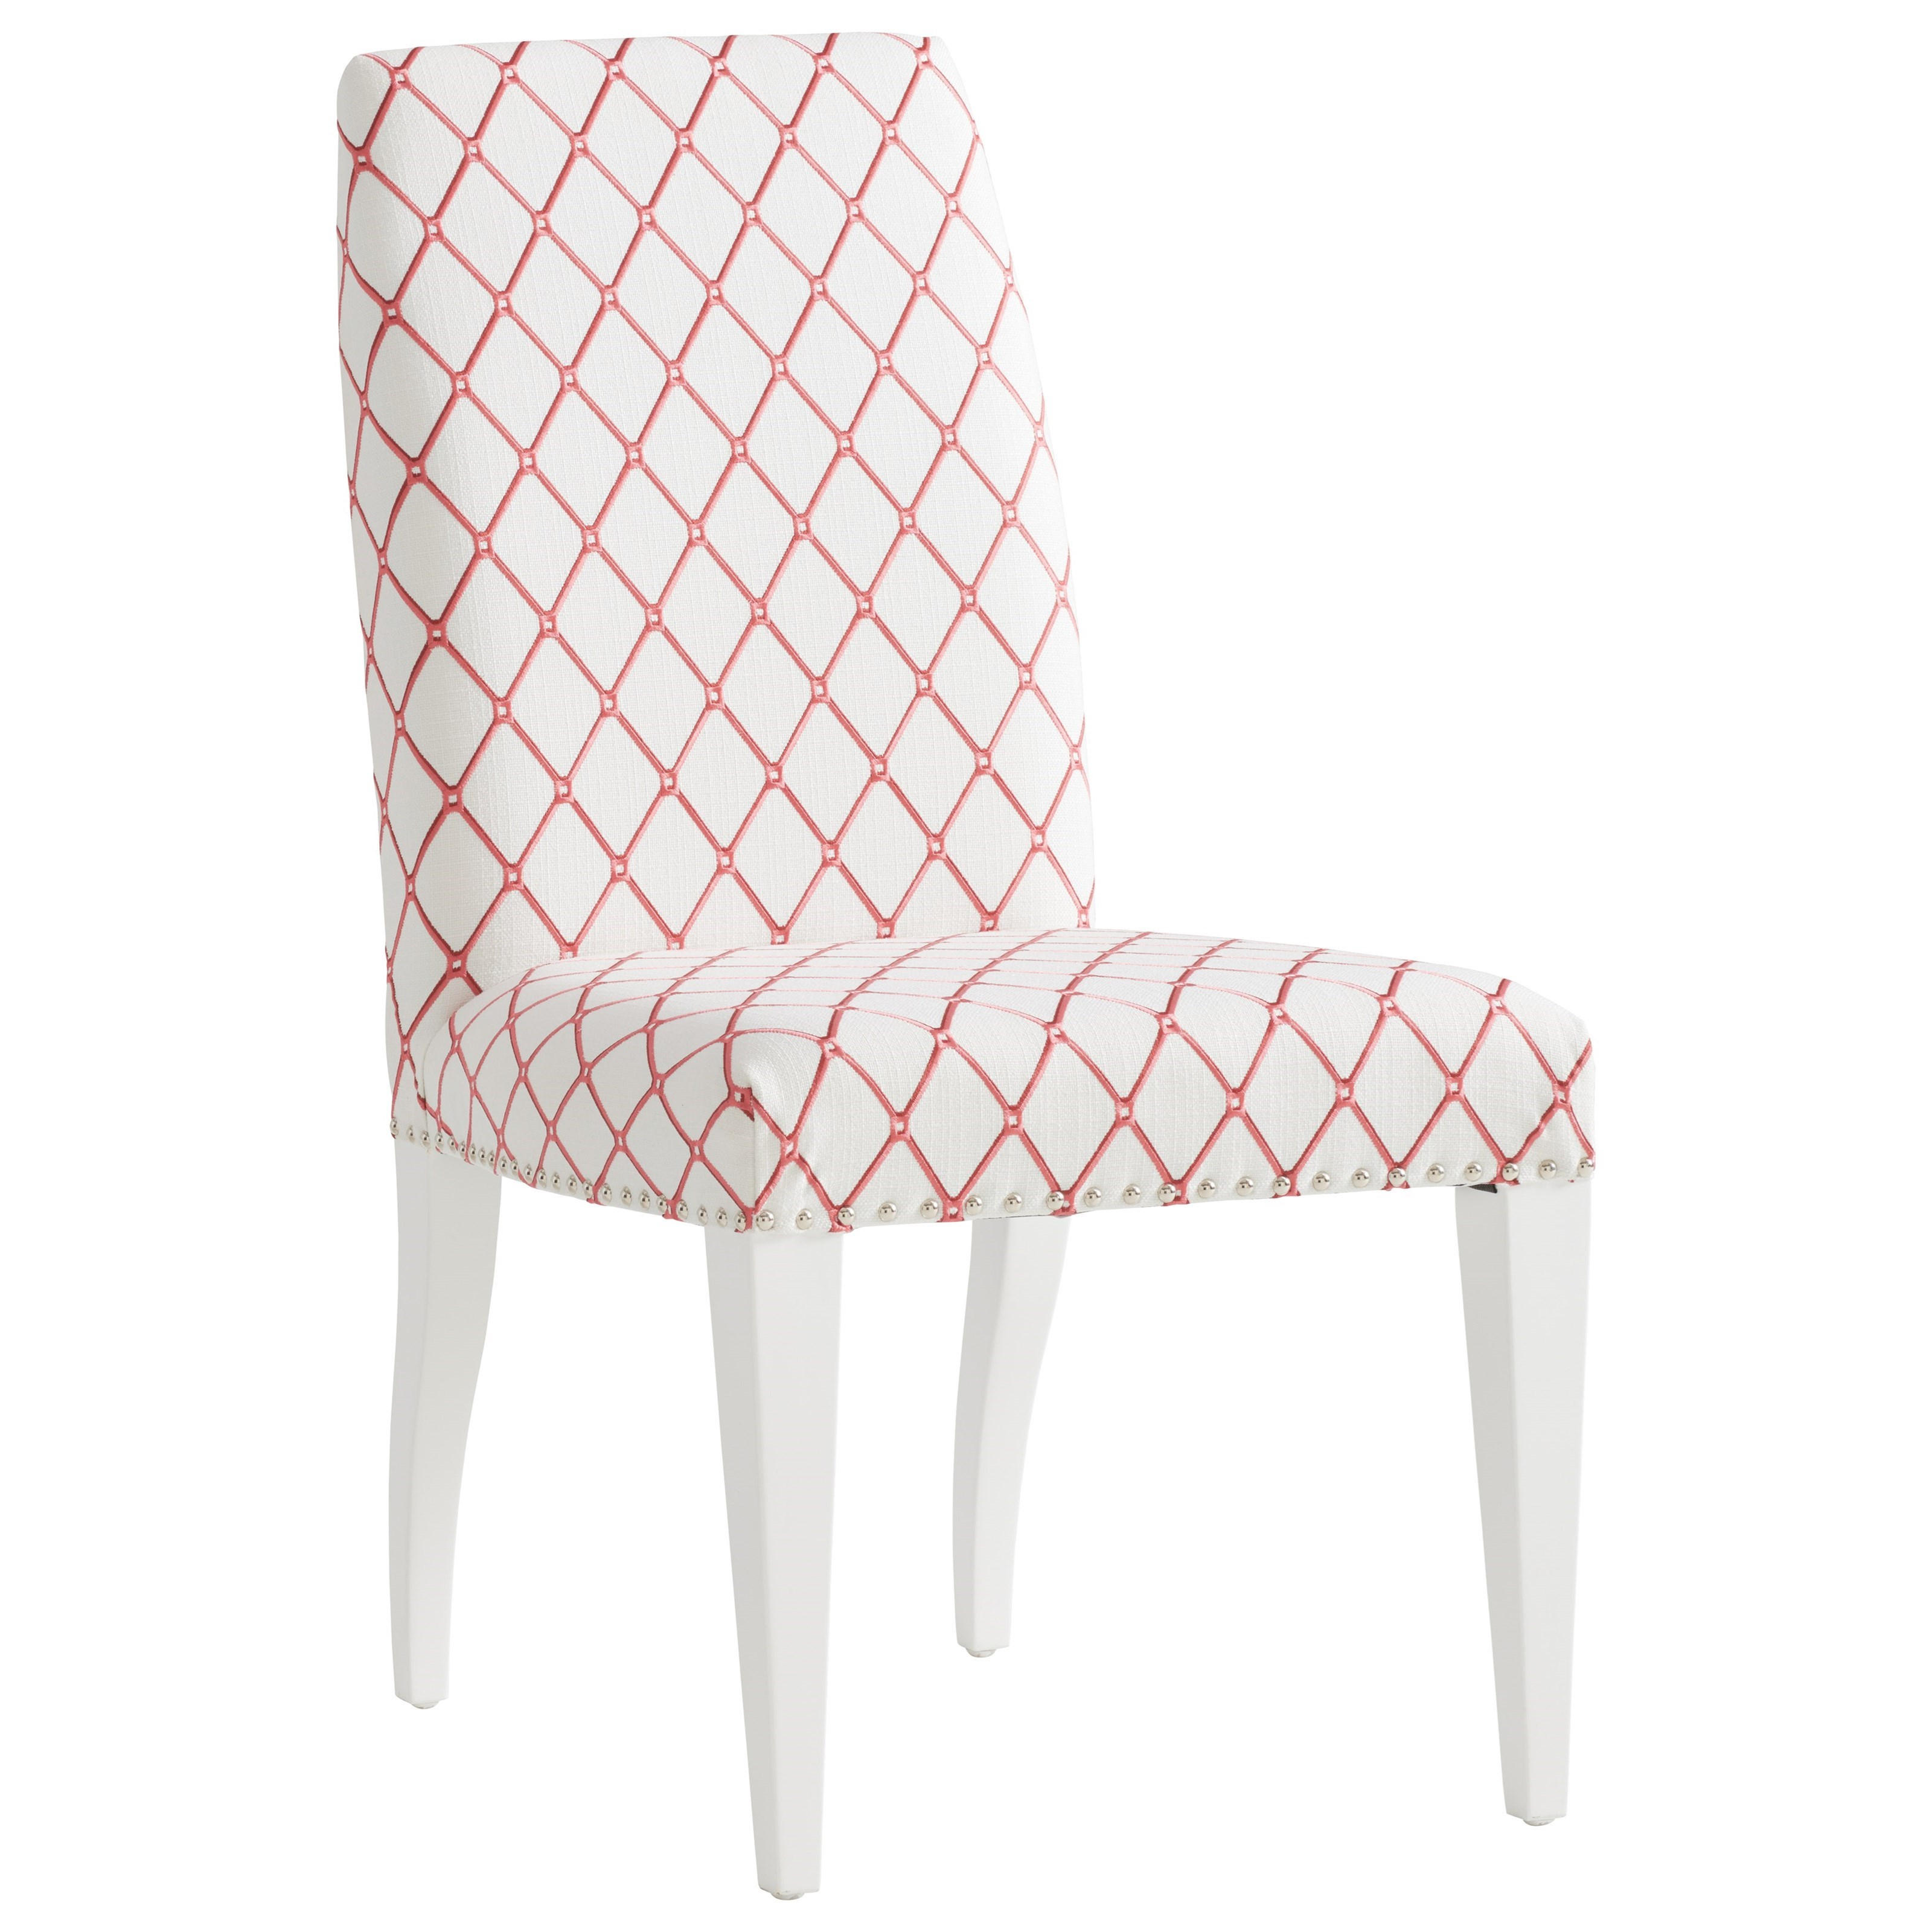 Avondale Darien Upholstered Side Chair - Custom by Lexington at Baer's Furniture